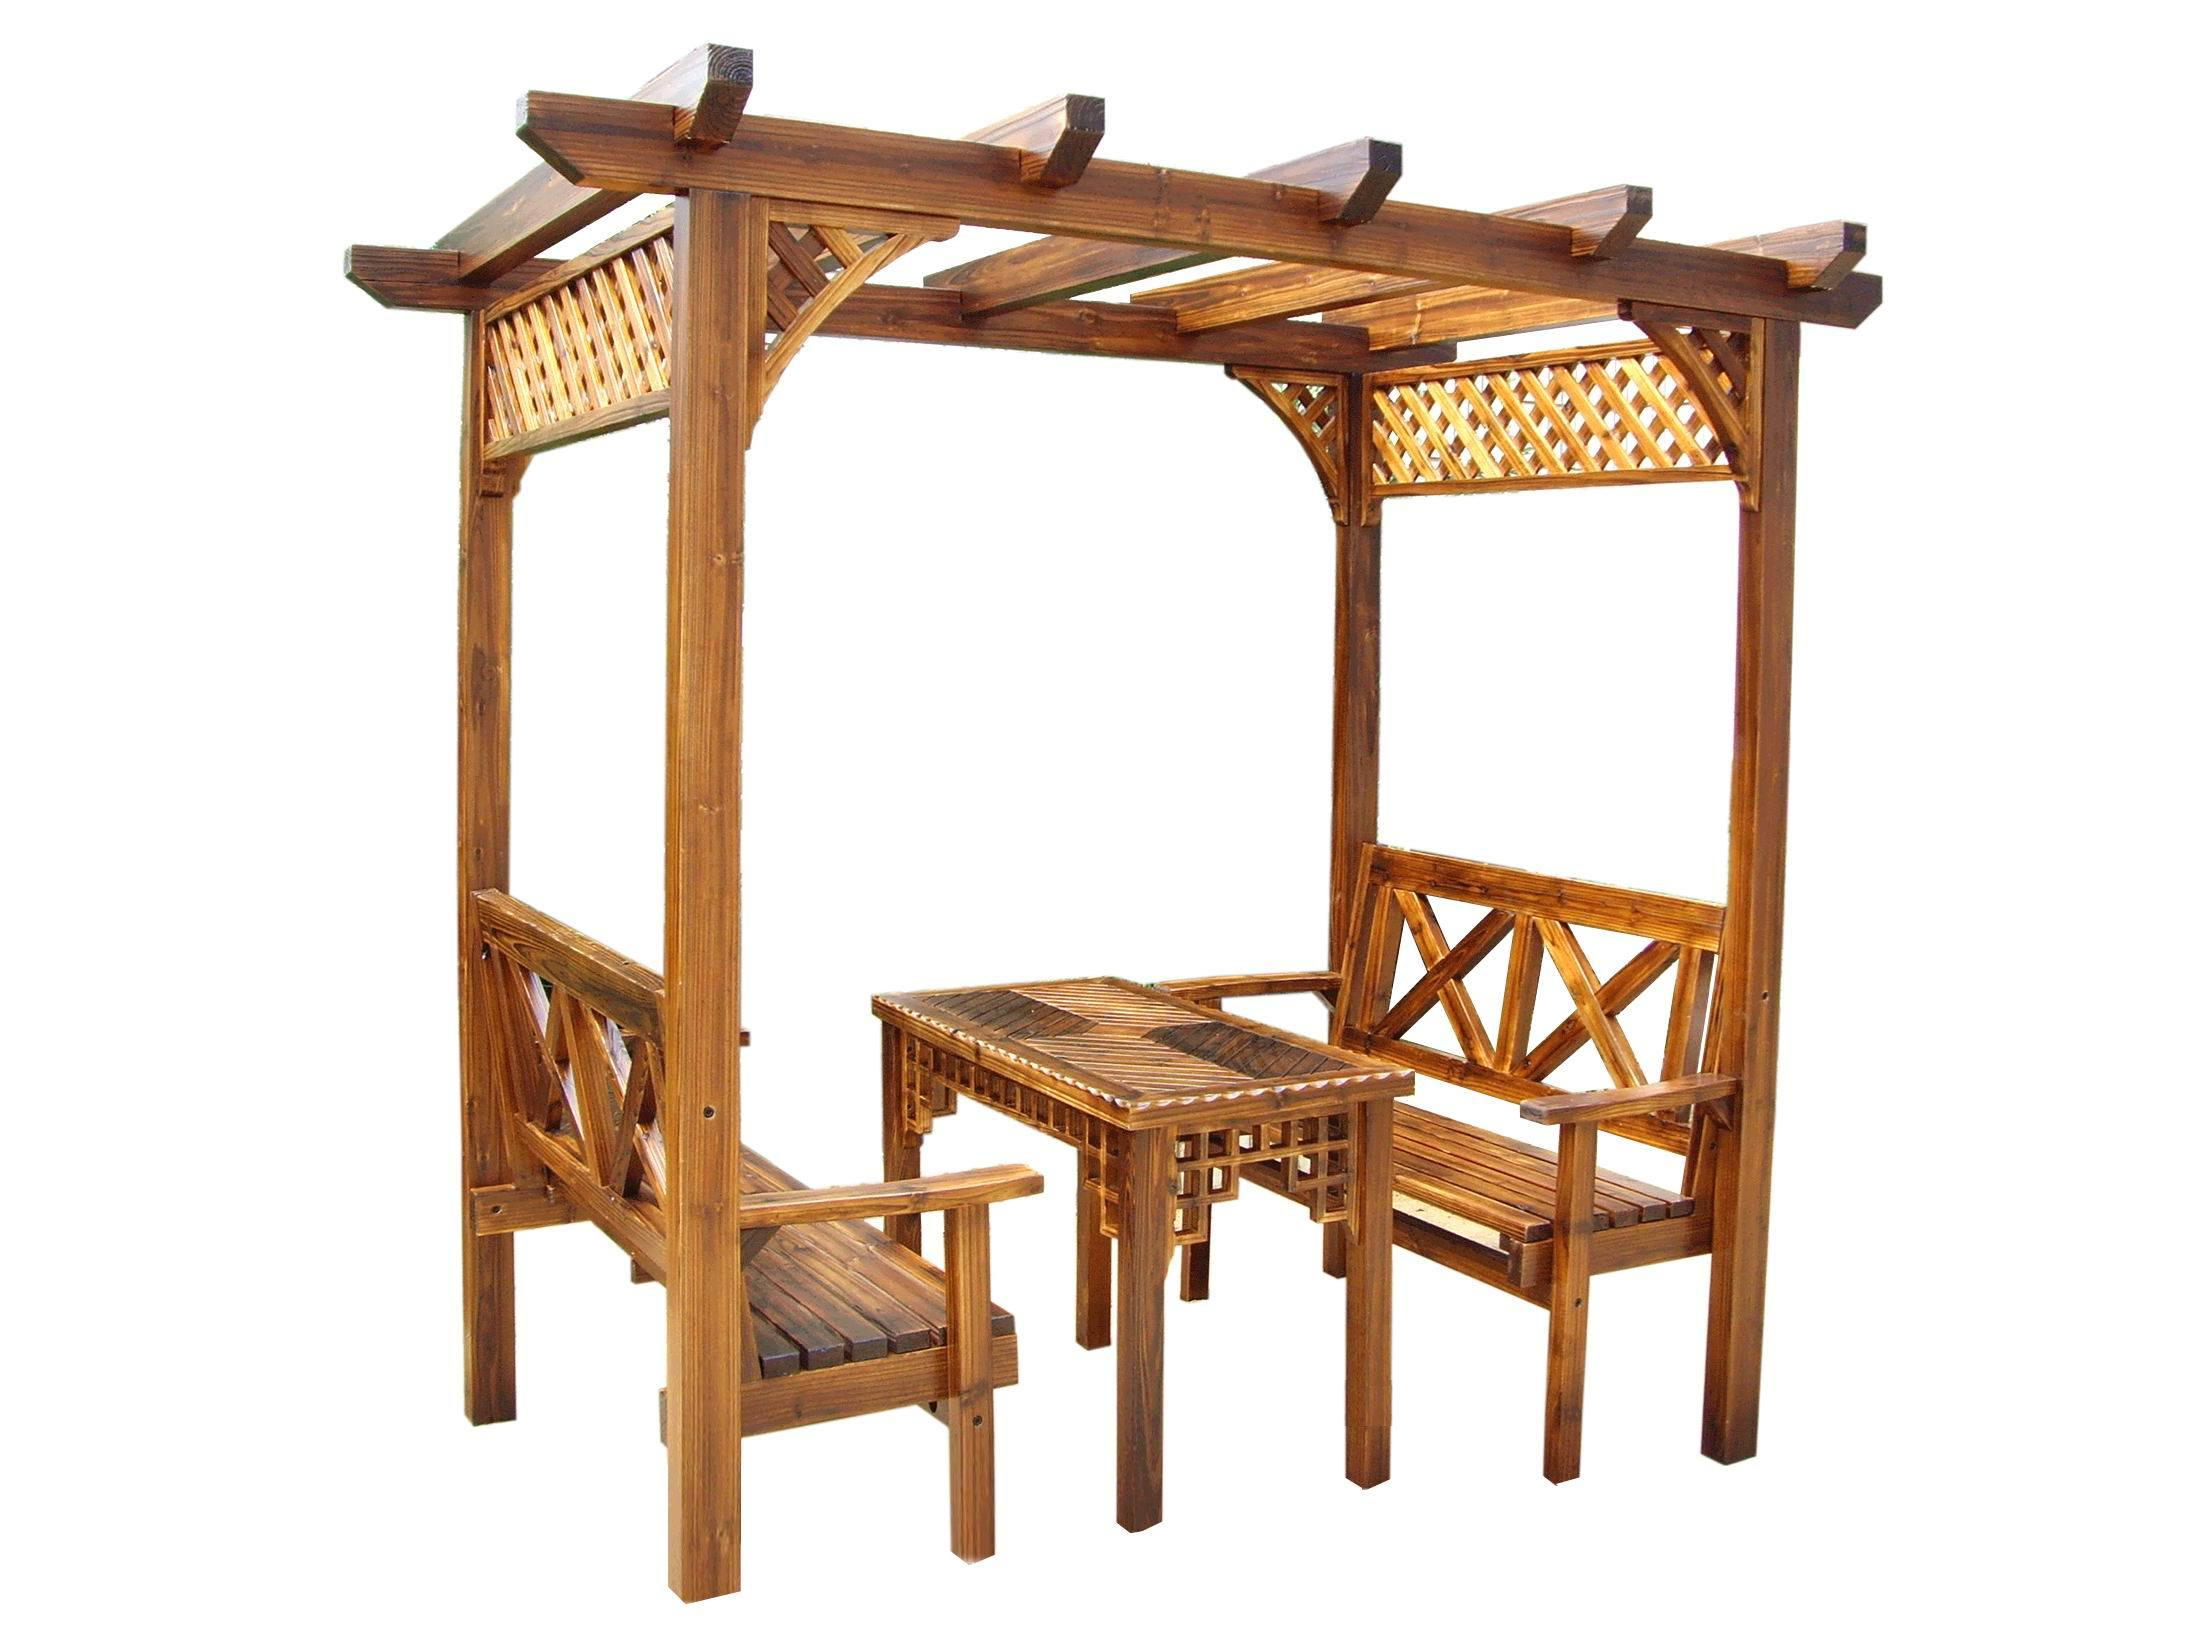 Outdoor Furniture Woodworking Plans New Design Woodworking